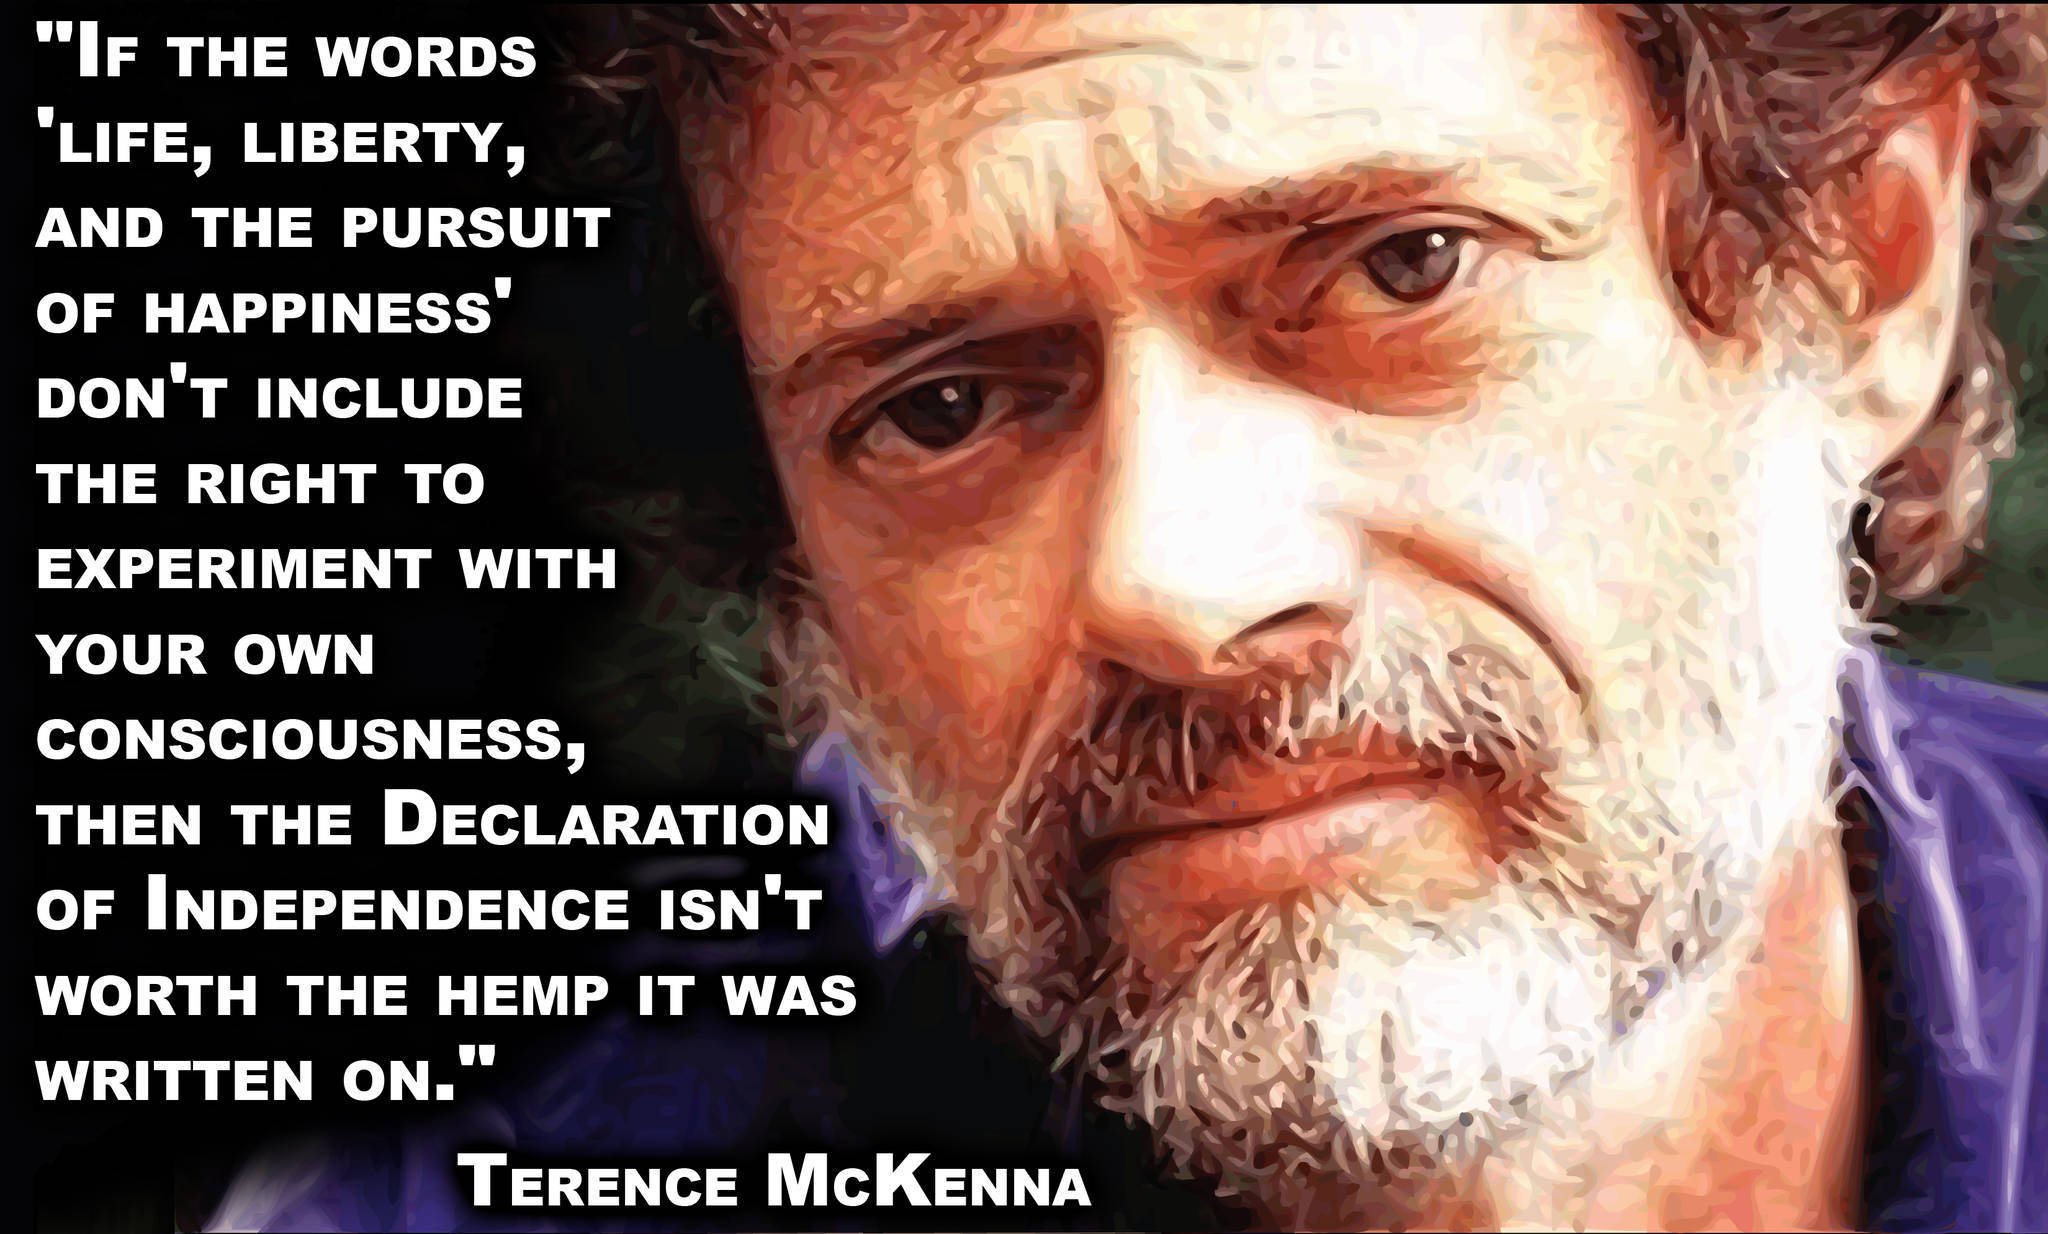 Terence McKenna's quote #1